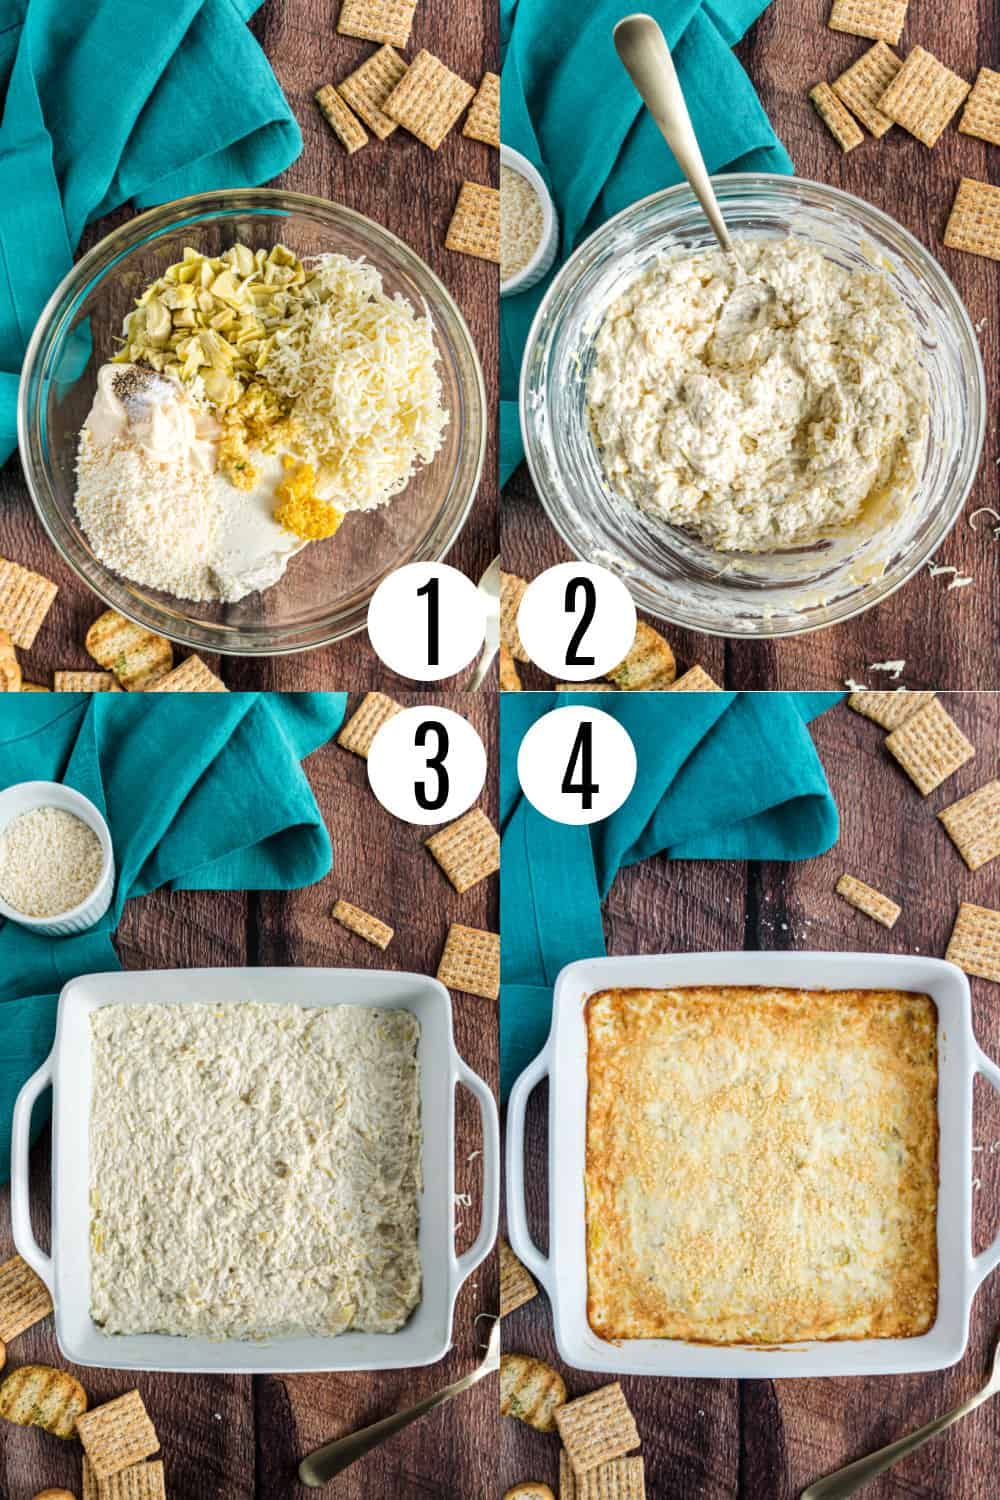 Step by step photos showing how to make artichoke dip.